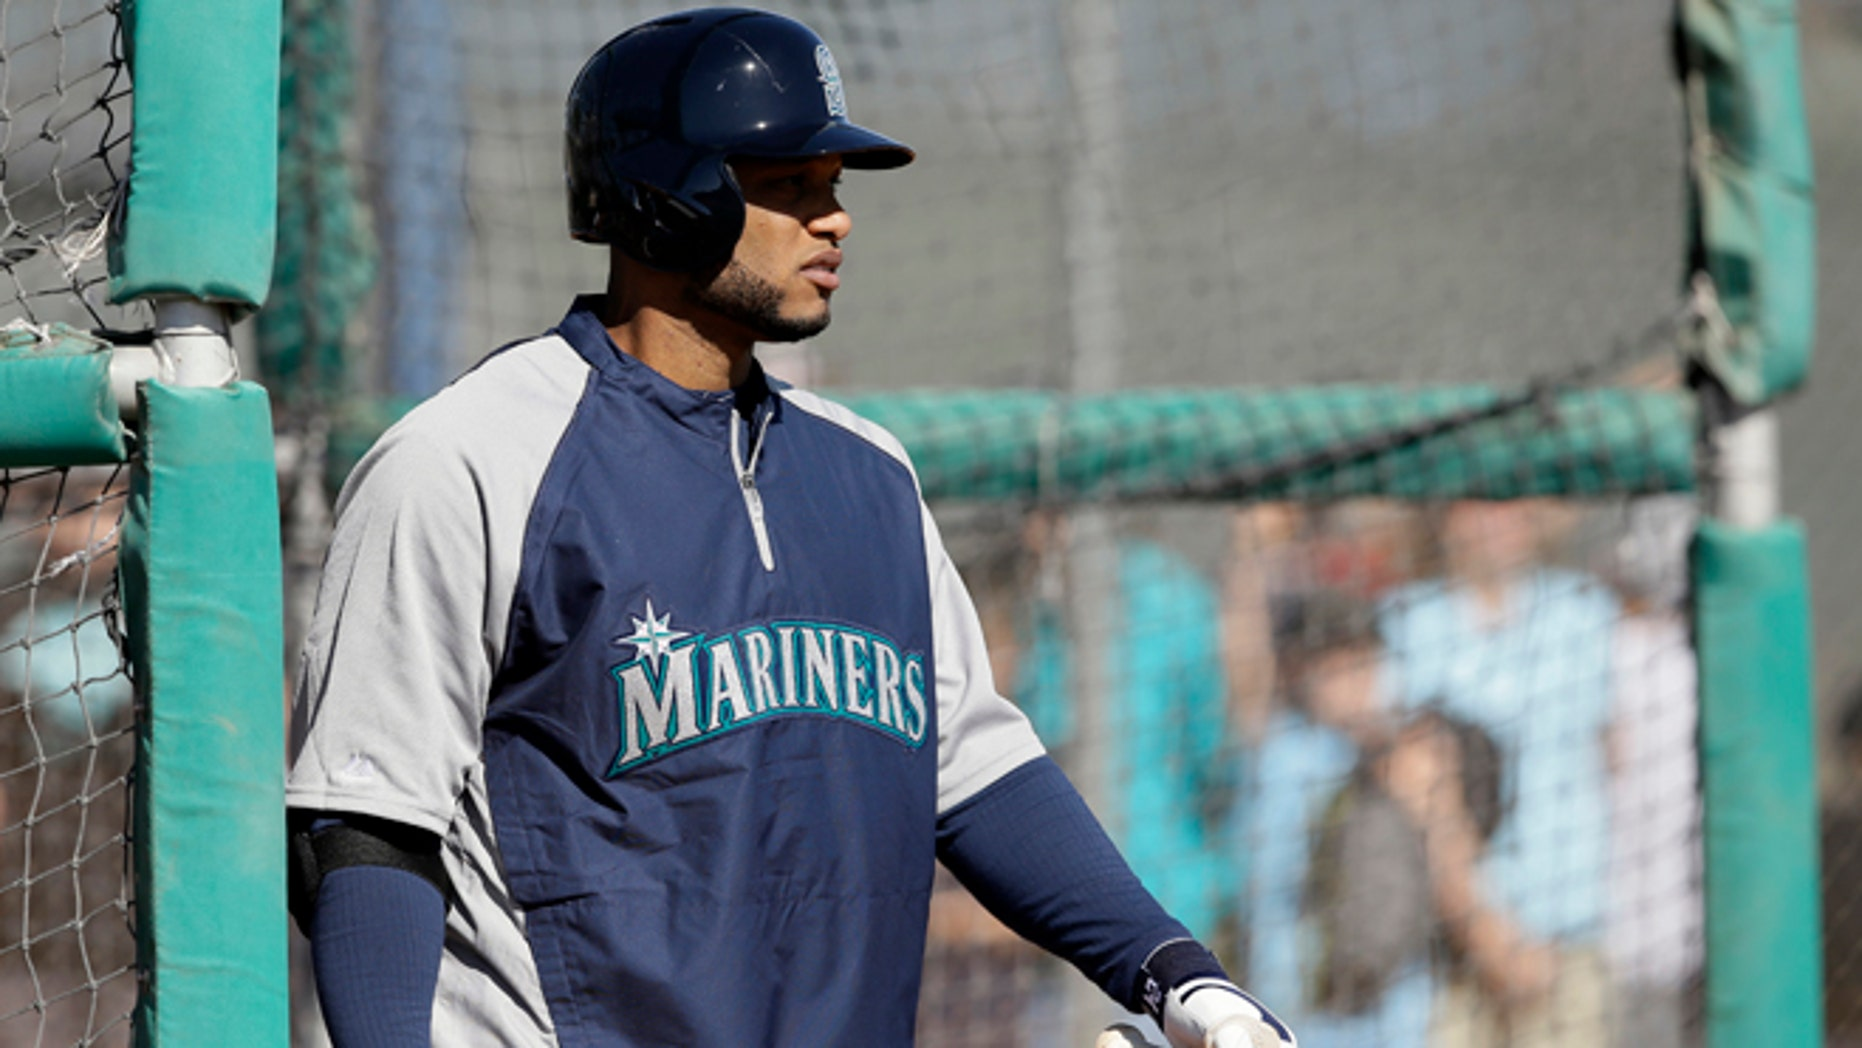 Seattle Mariners' Robinson Cano  walks out of the batting cage after hitting during spring training baseball practice, Thursday Feb. 20, 2014, in Peoria, Ariz. (AP Photo/Tony Gutierrez)